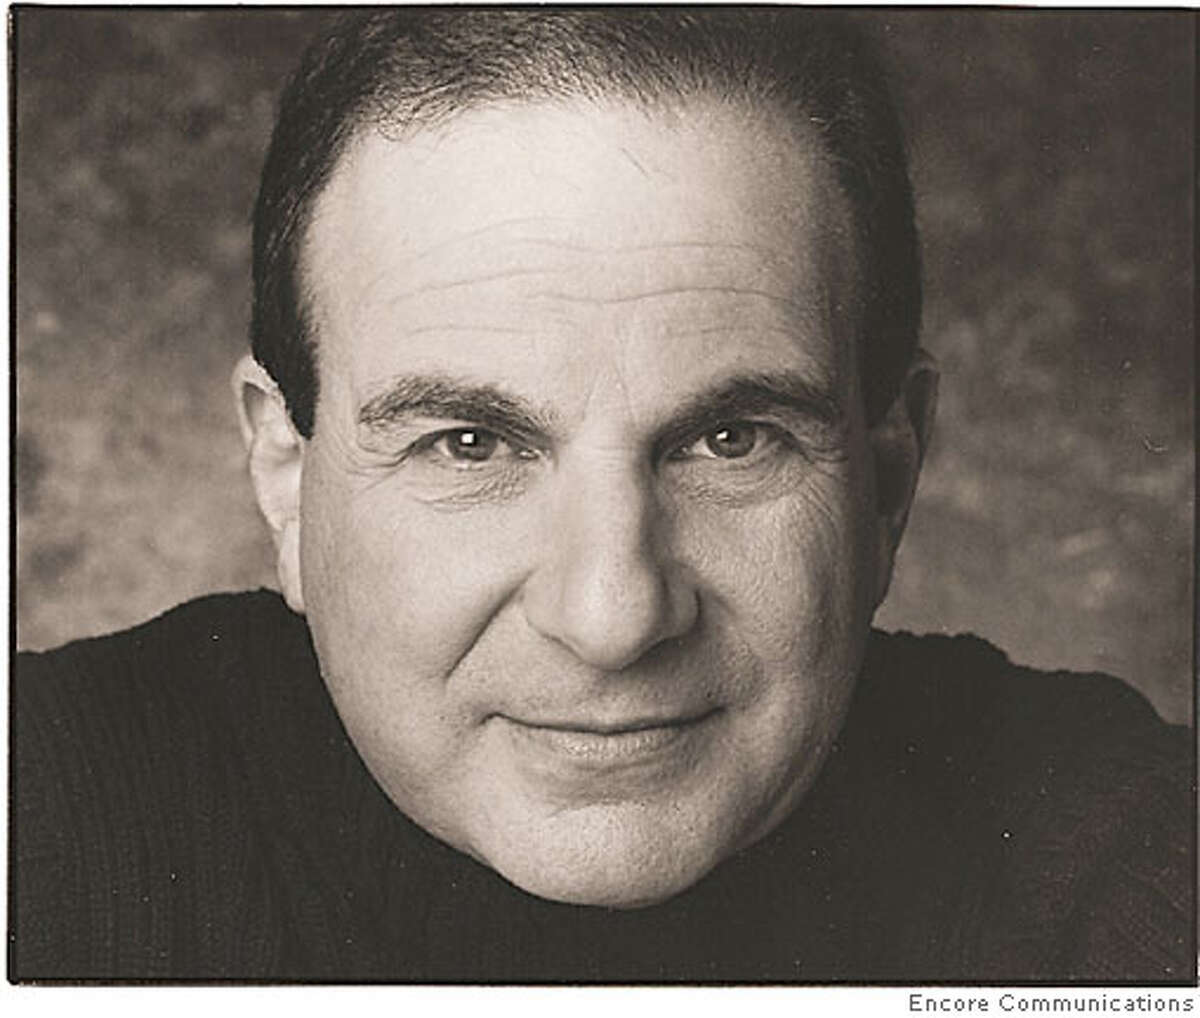 Martin Katz, pianist and conductor, who coaches in the Merola Opera Program director Ran on: 07-08-2007 Martin Katz came to the Merola Opera Program with little conducting experience, but lots of opinions.